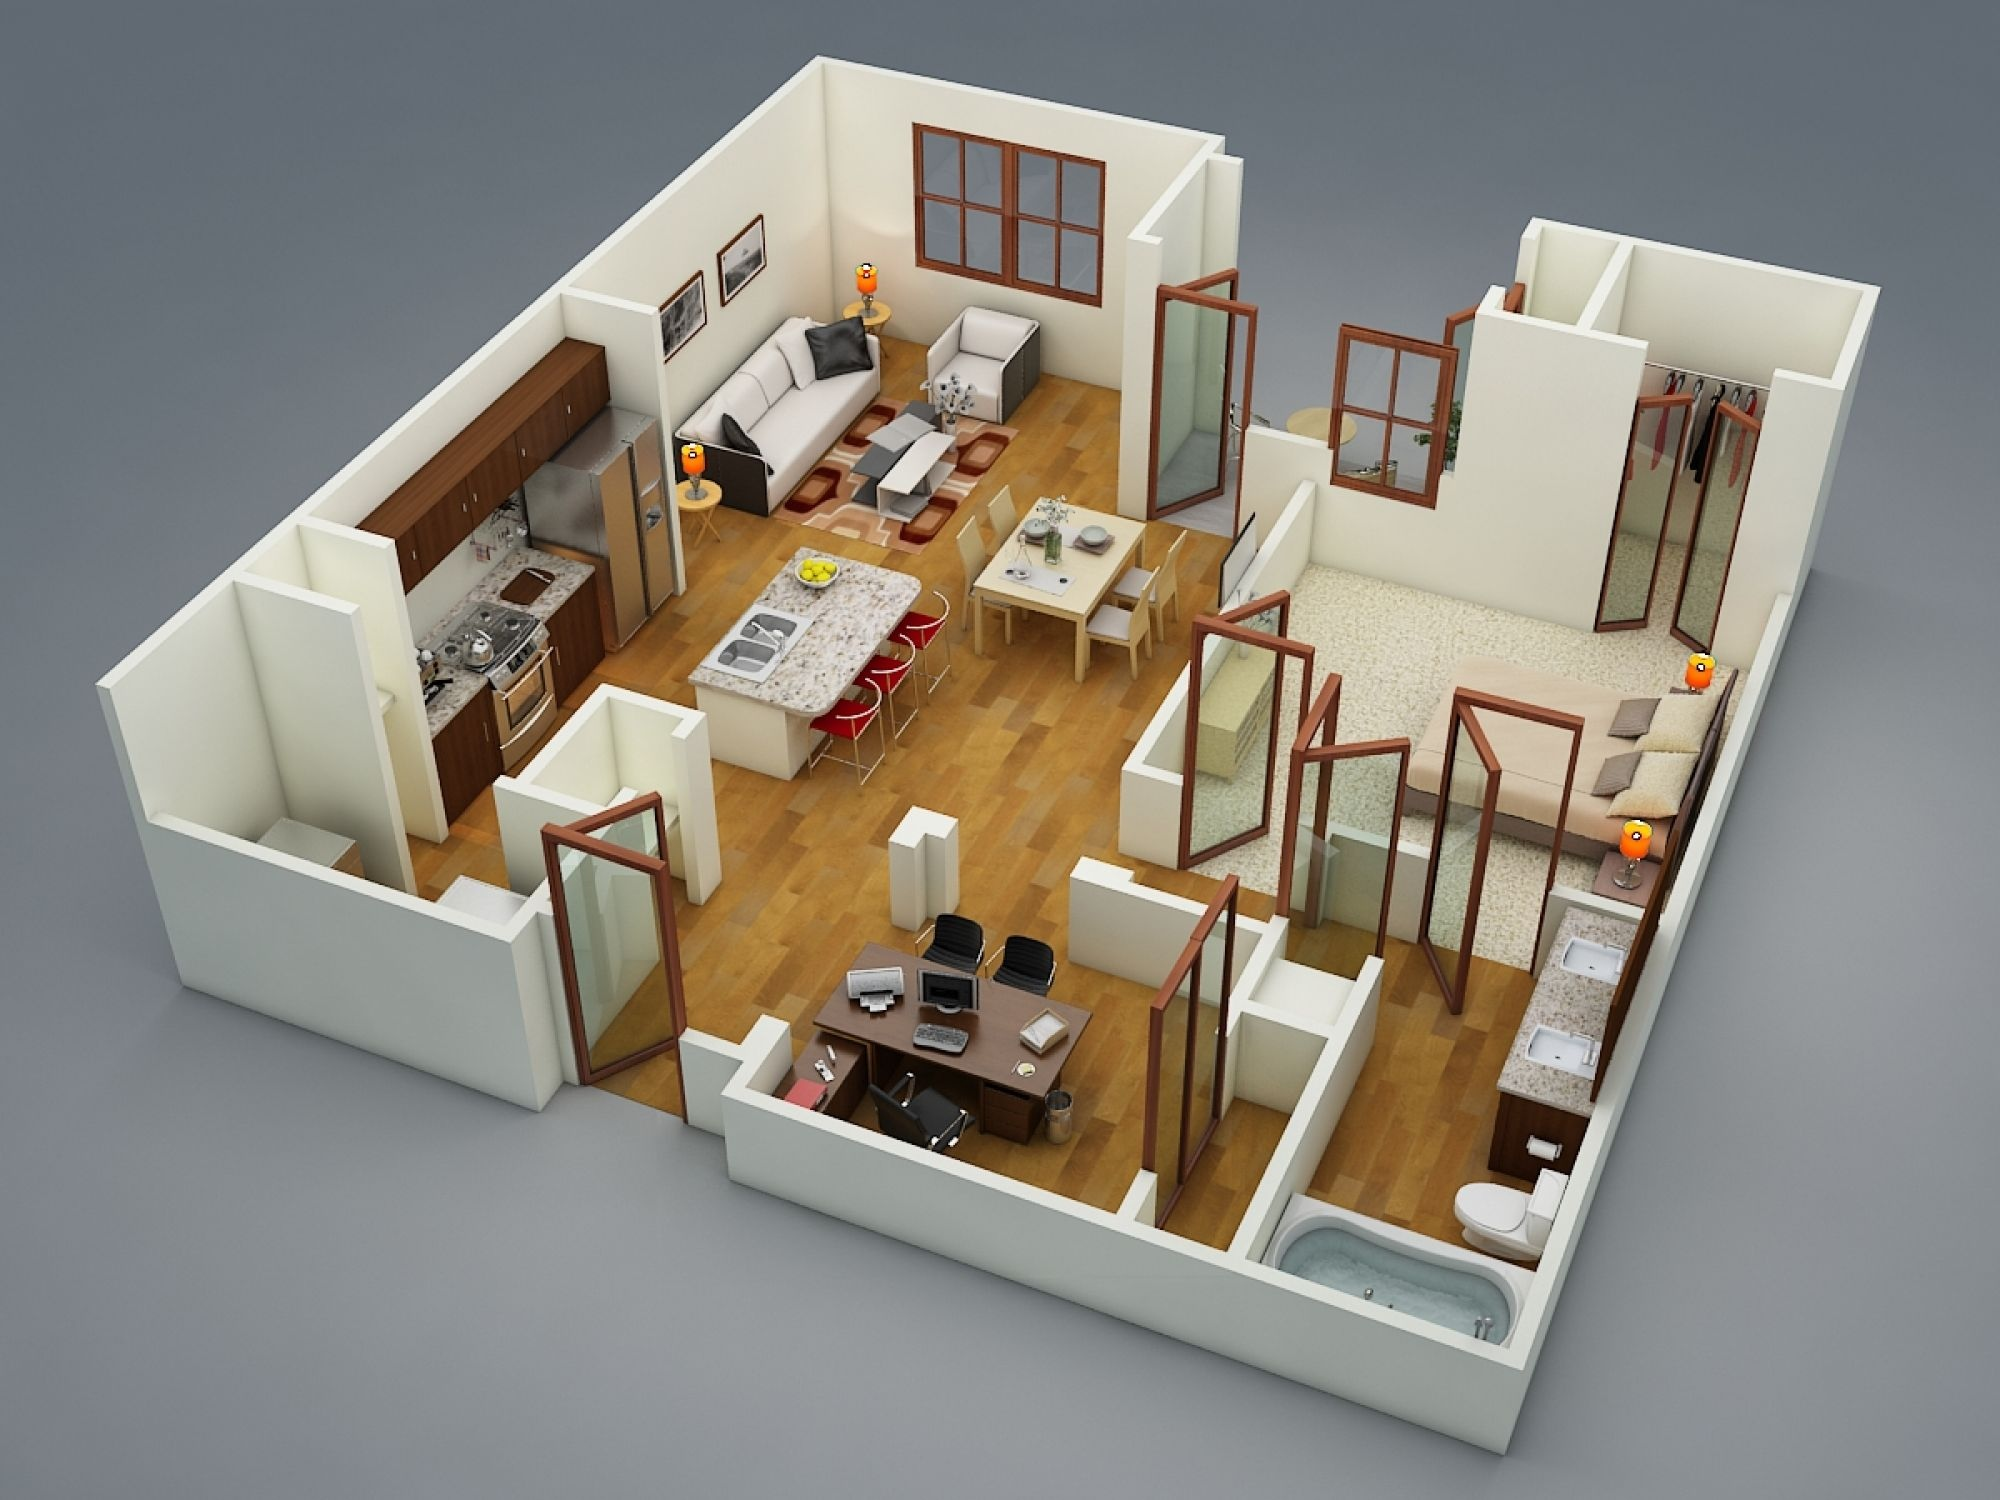 50 one 1 bedroom apartment house plans architecture for Different interior designs of houses